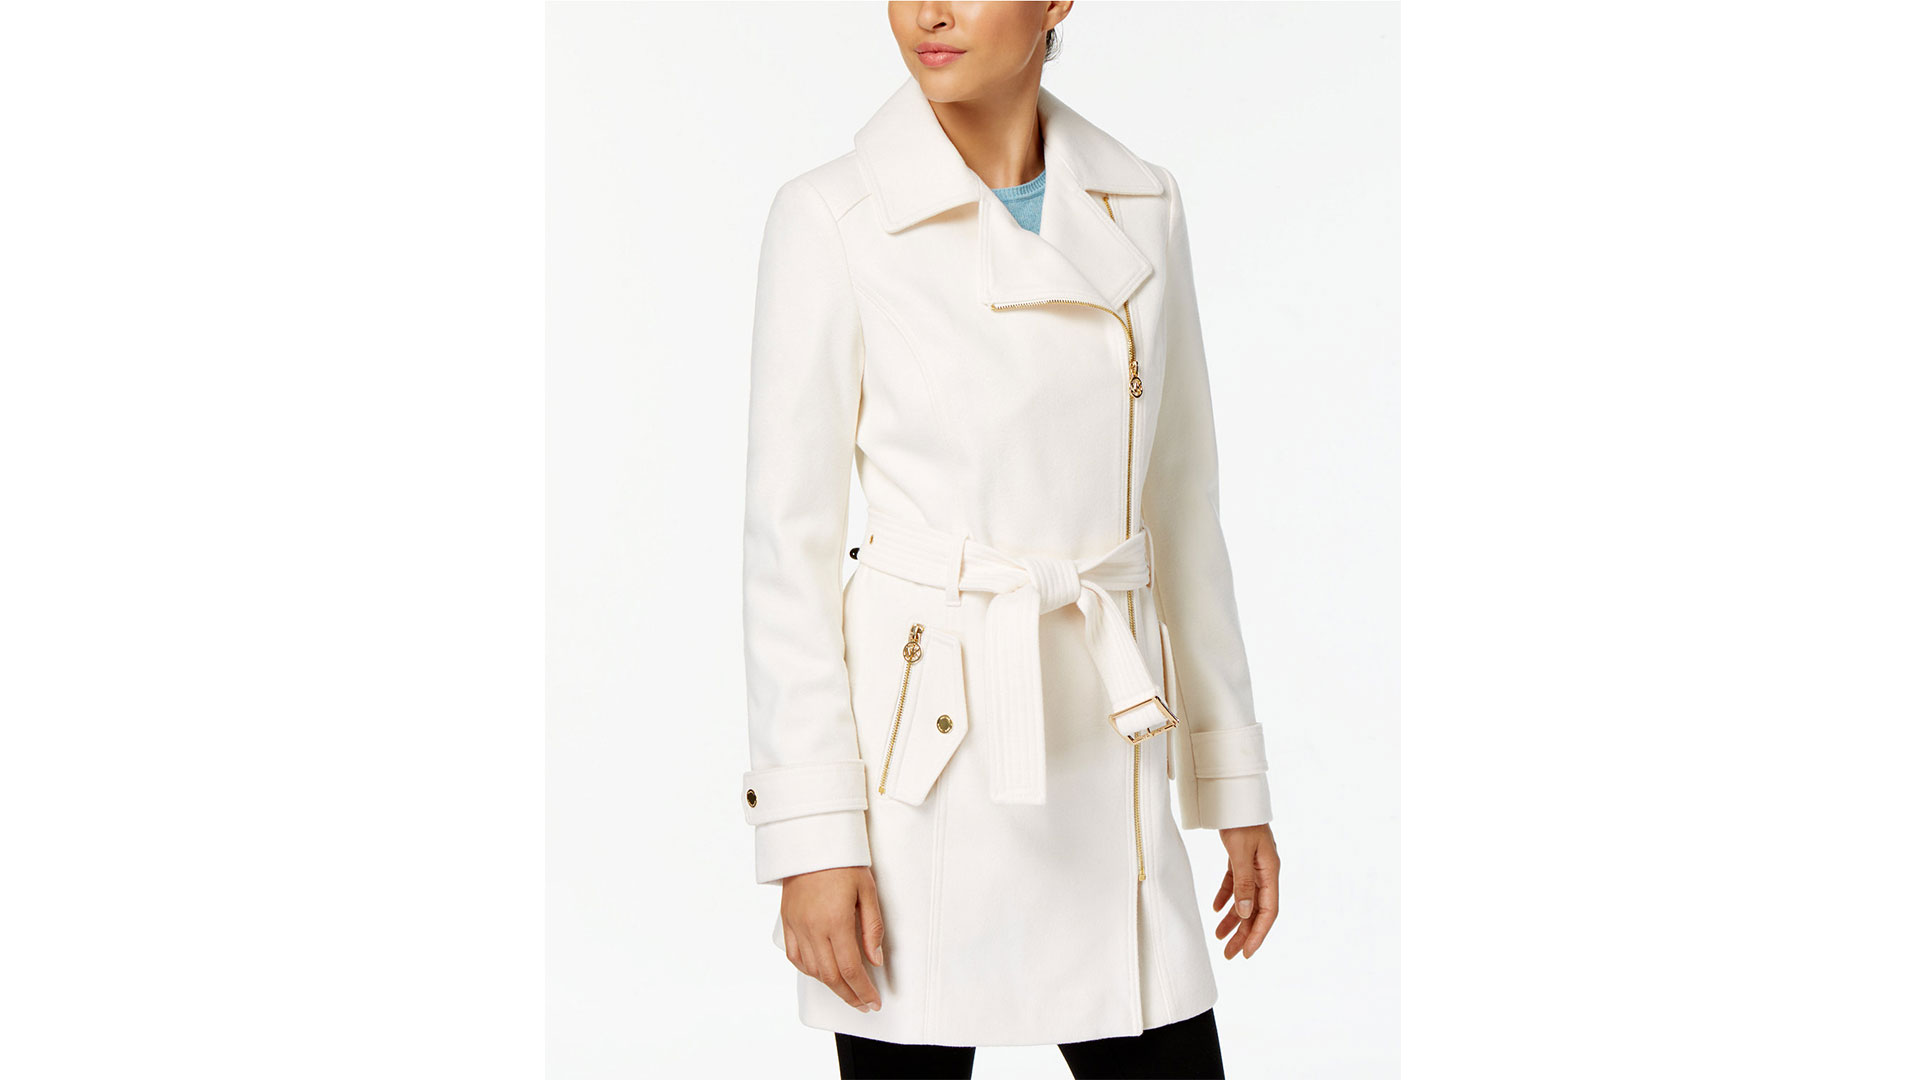 Macy's Michael Kors Asymmetrical Walker Coat